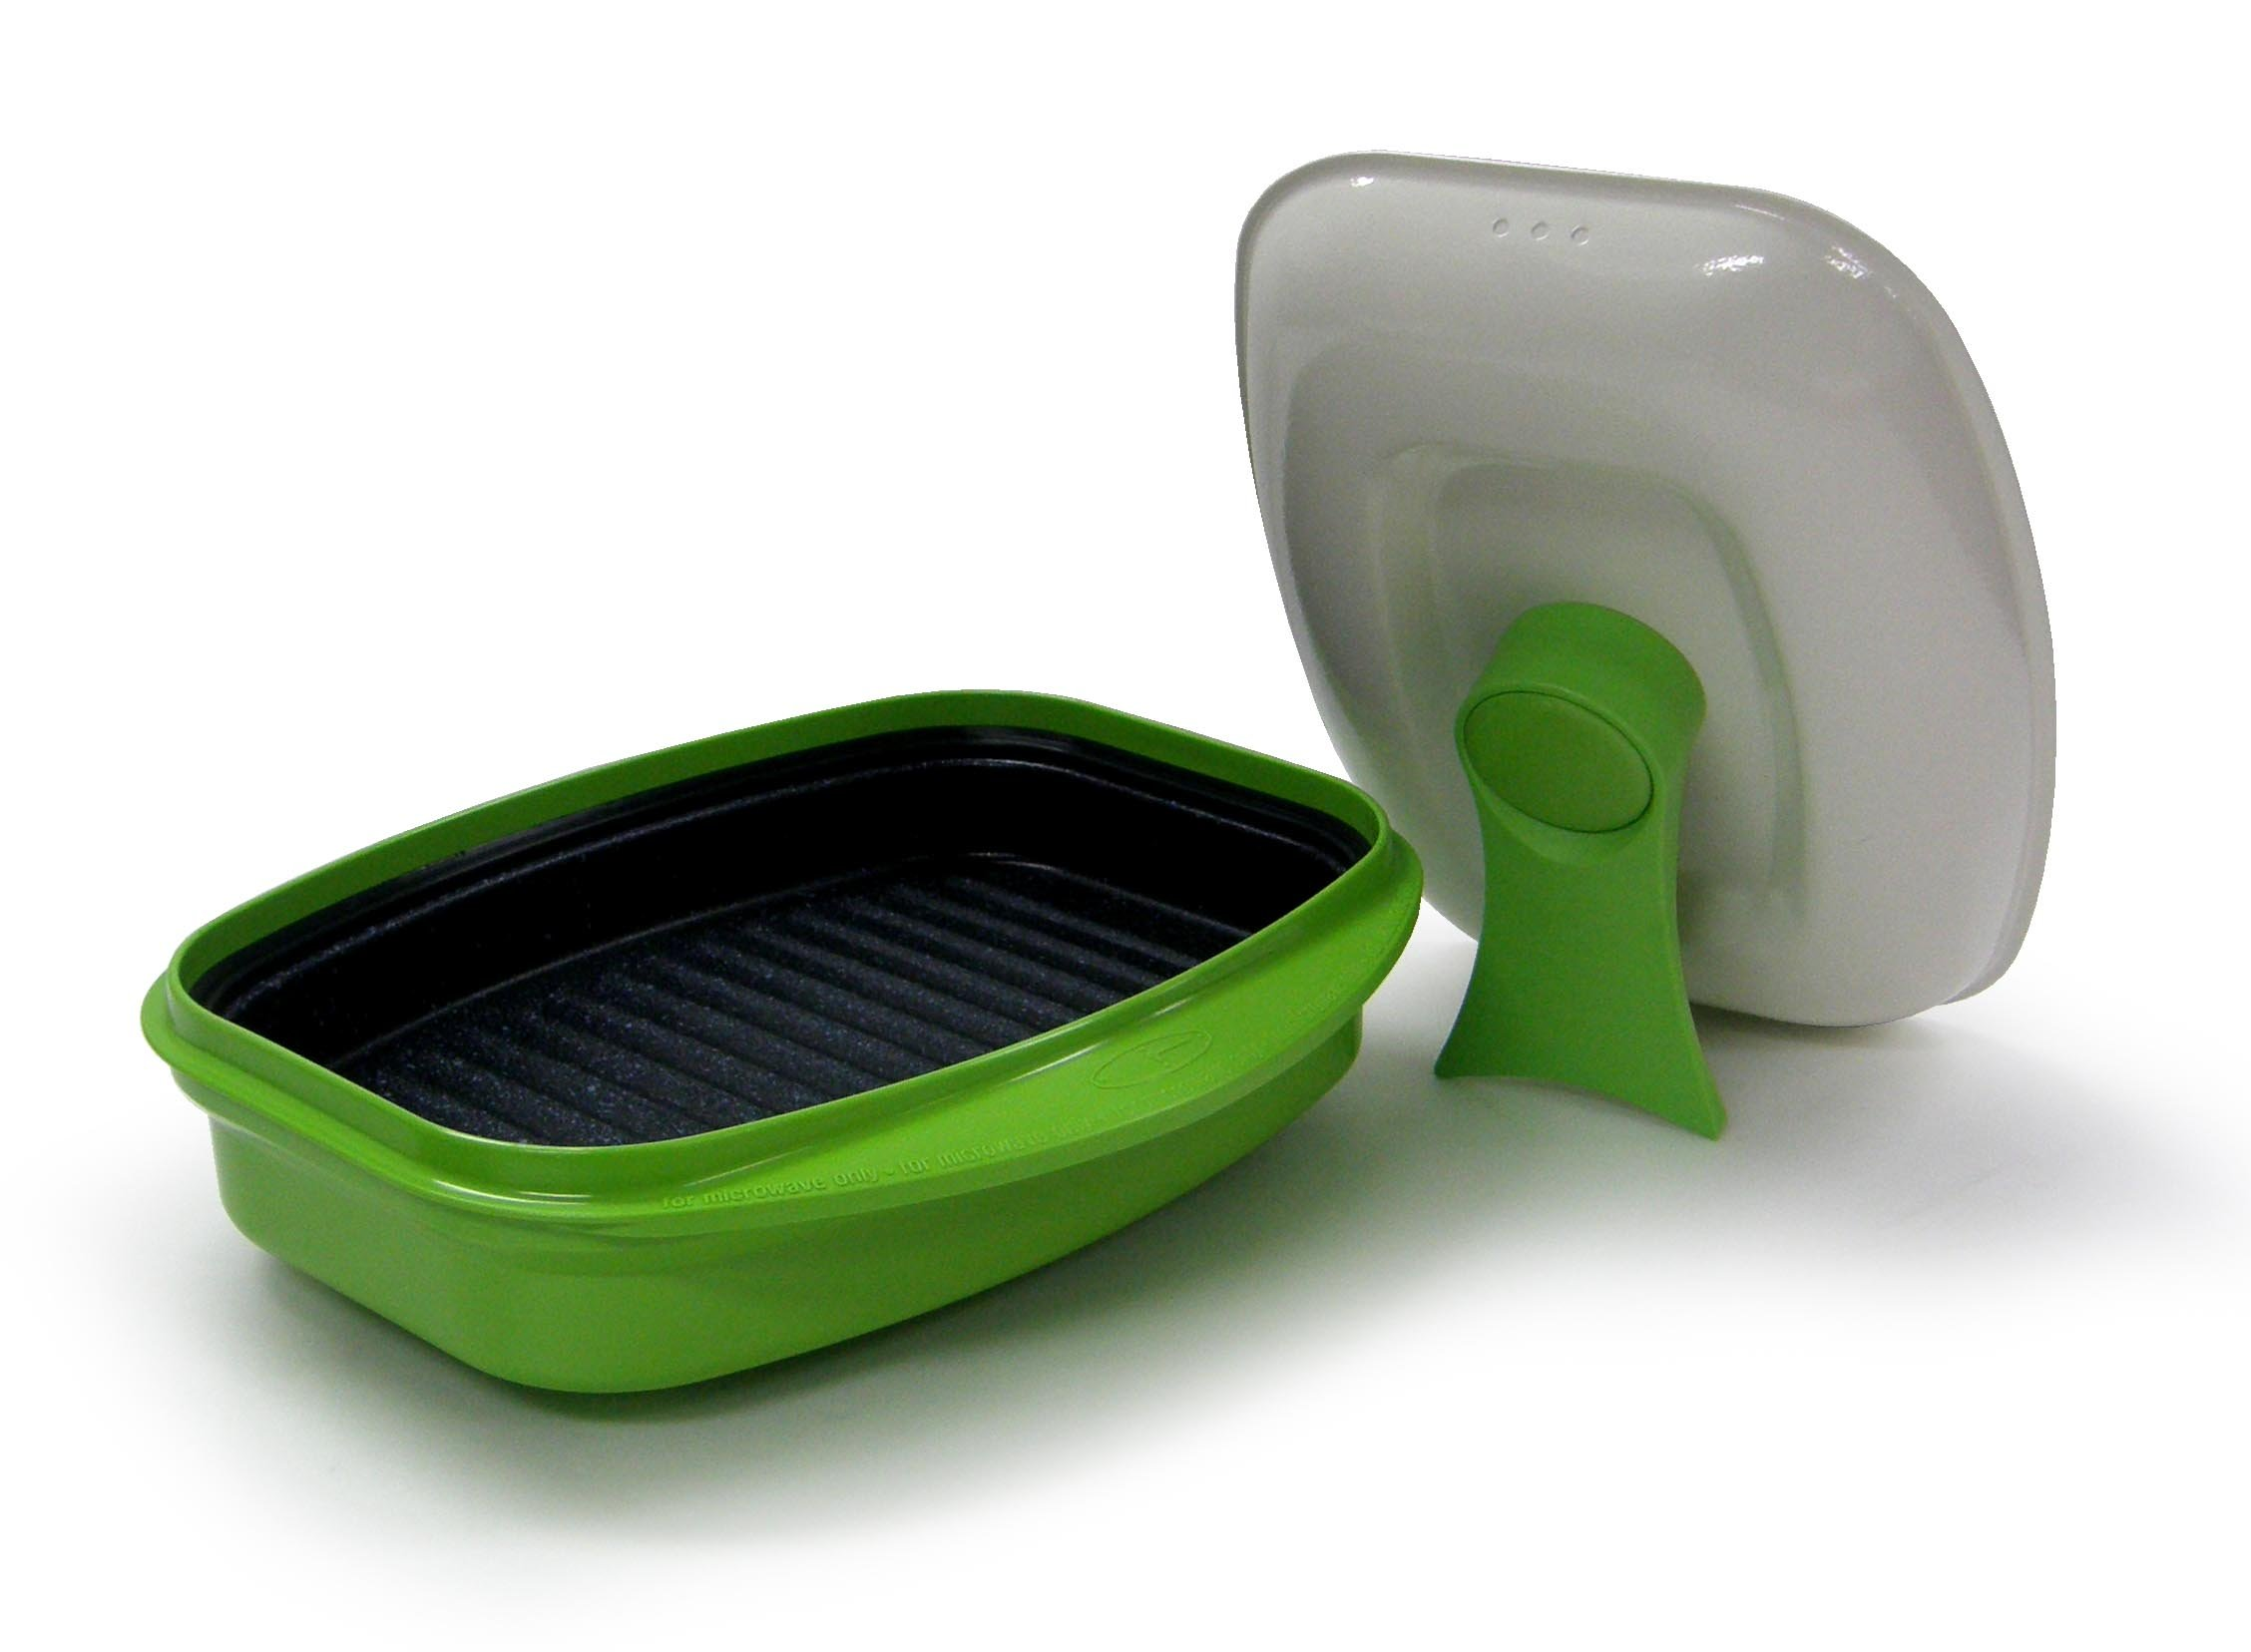 Microhearth 2-piece Grill Pan for Microwave Cooking